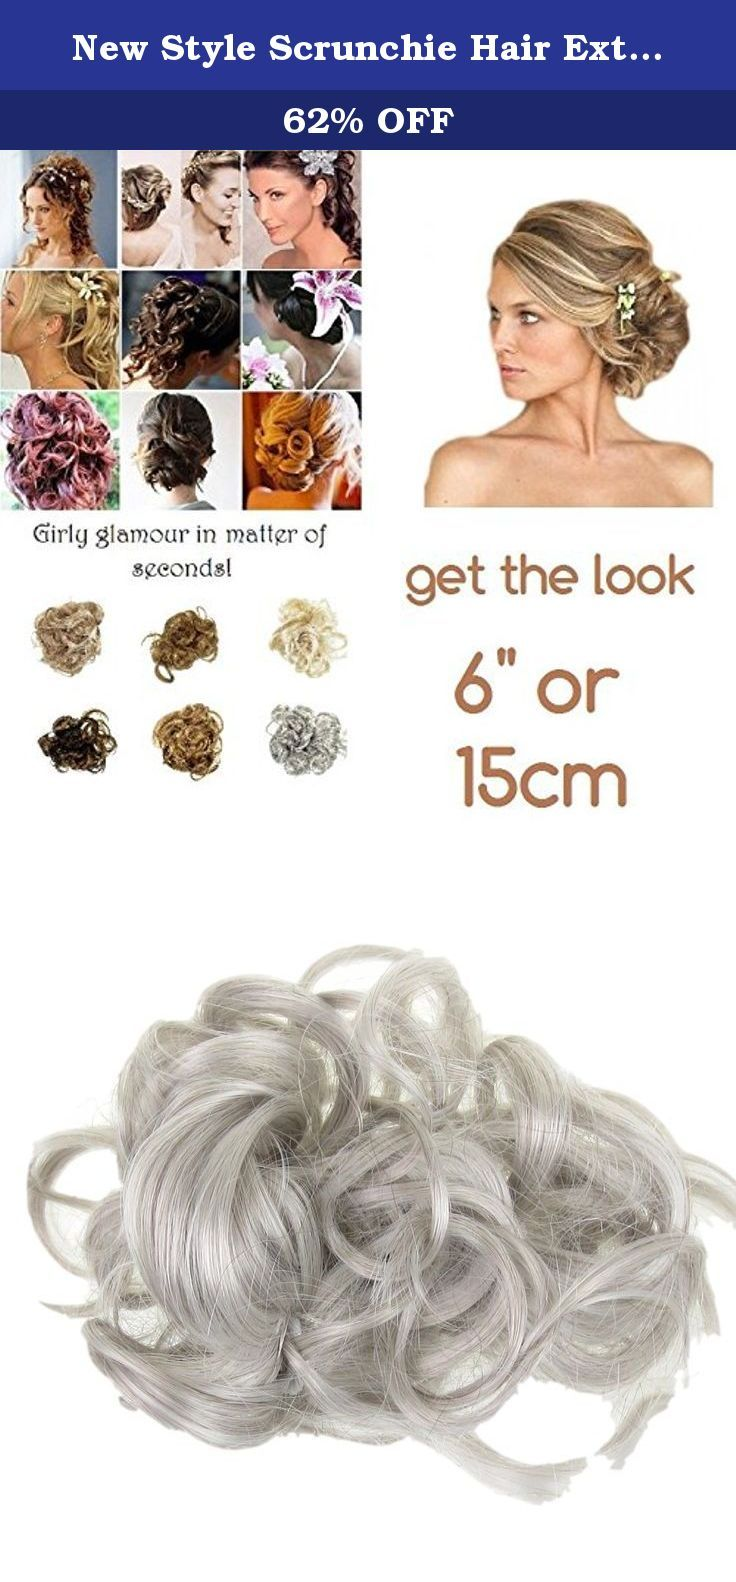 New Style Scrunchie Hair Extension Curly Up Do (Silver Grey Mix) Synthetic. Instant Girly Curly Style! A simple, little, luxurious, body creating, scrunchie. Twist on elastic so that you can vary the shape, anyone can manage the Bardot famous look. Never have a bad hair day again. Try this Multi Use curly Twister! Twister is a fabulous product you can create an updo or large bun in seconds! Wear two for an even higher curly messy look. Wear as an up do twisted round a high pony. This is…